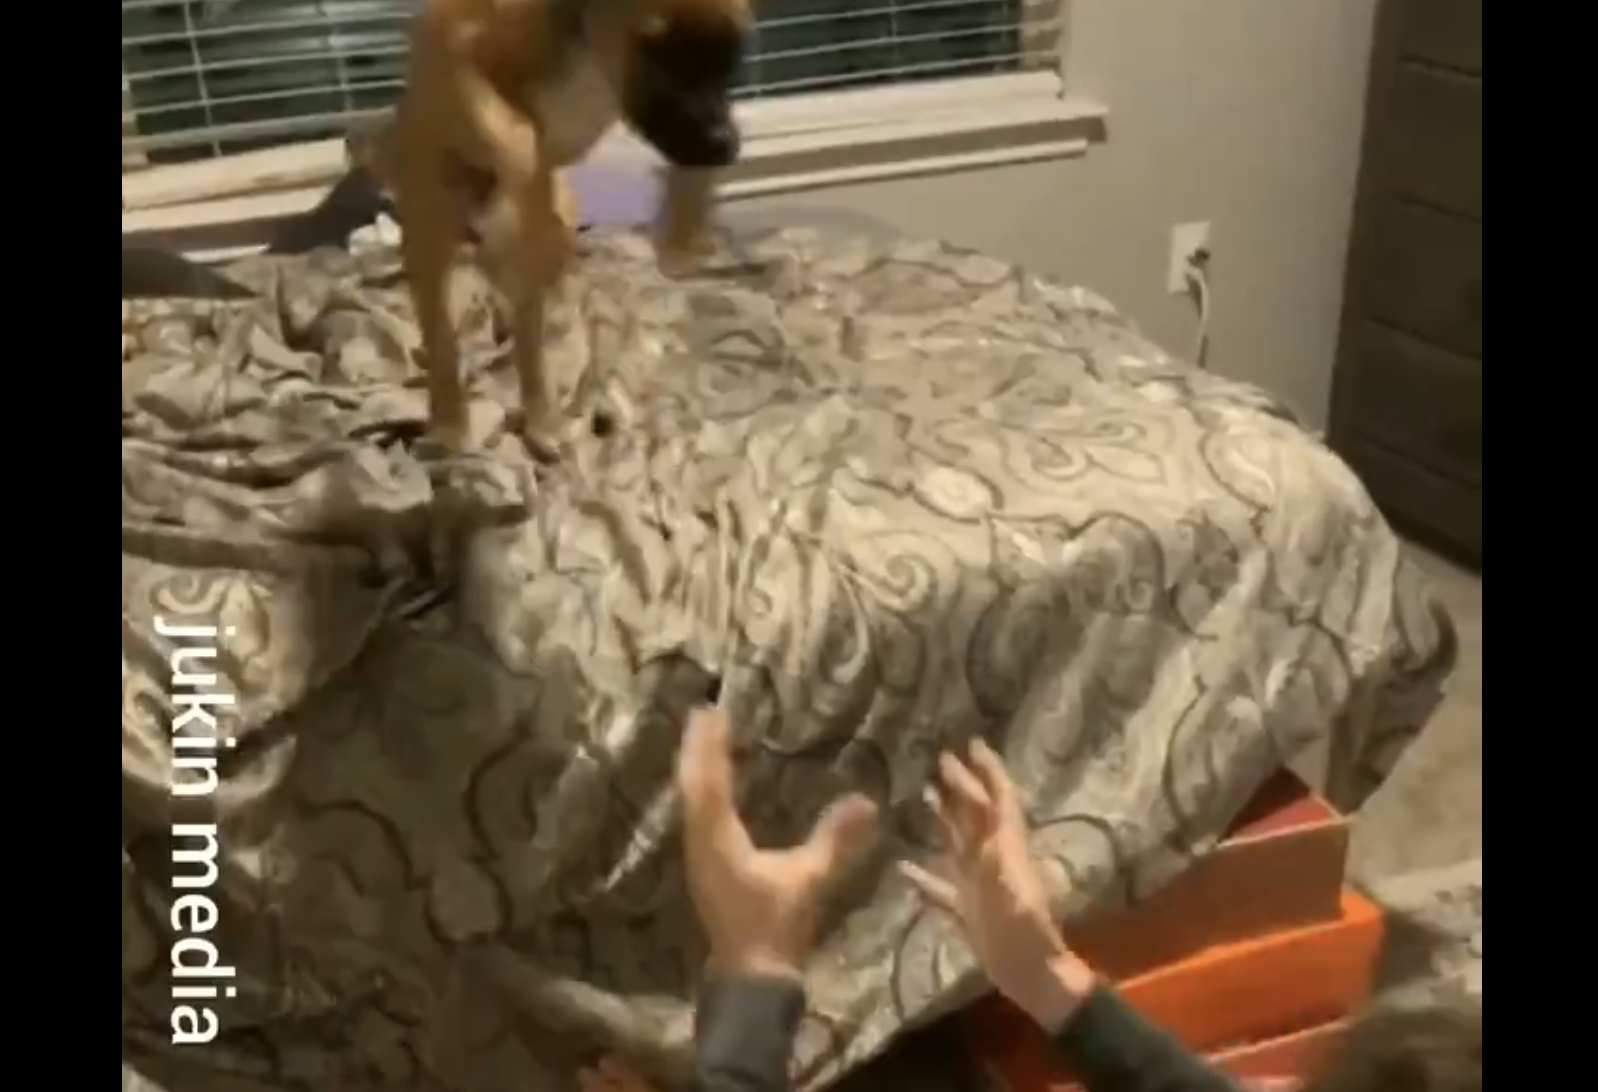 A dog jumping off a bed